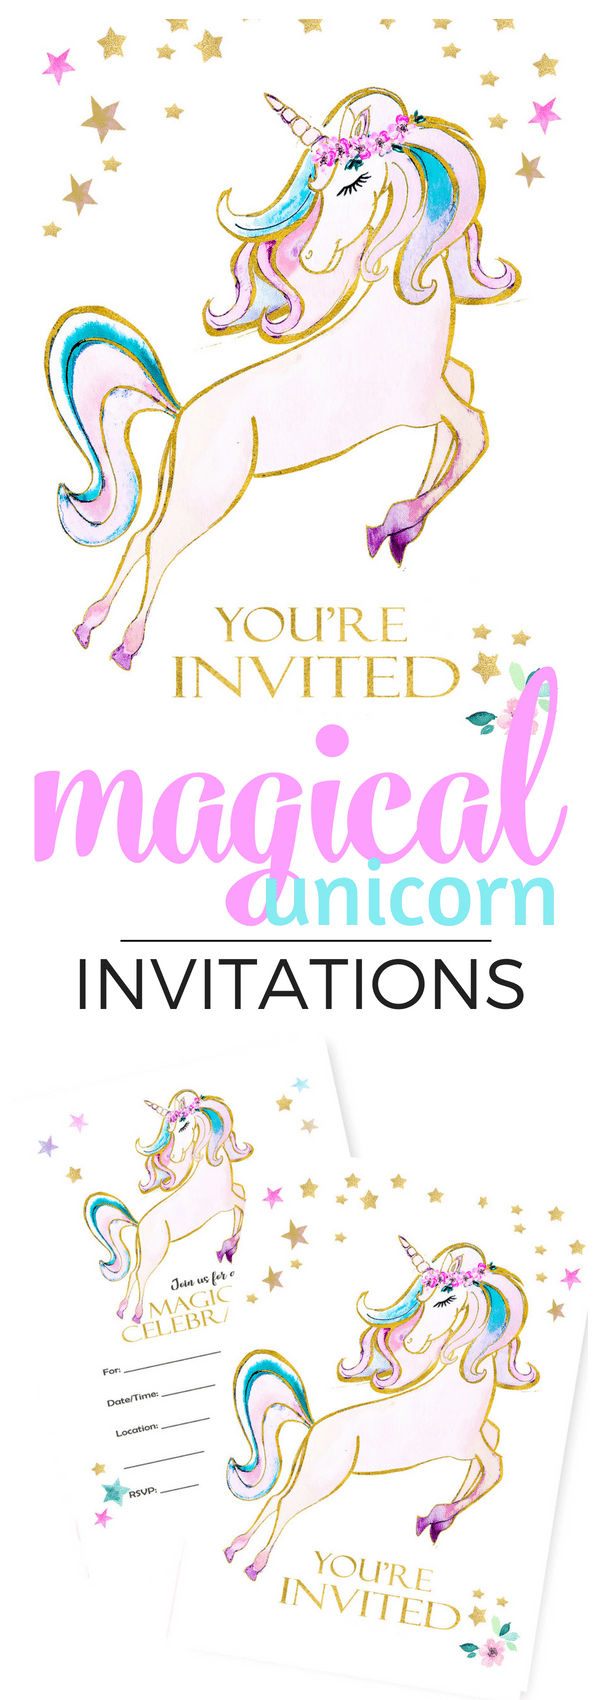 This pretty golden watercolor unicorn inspired the sweetest unicorn party. The brilliant colors create a magical mood. Available on Amazon and Tinselbox.com. Get yours in 2 days!